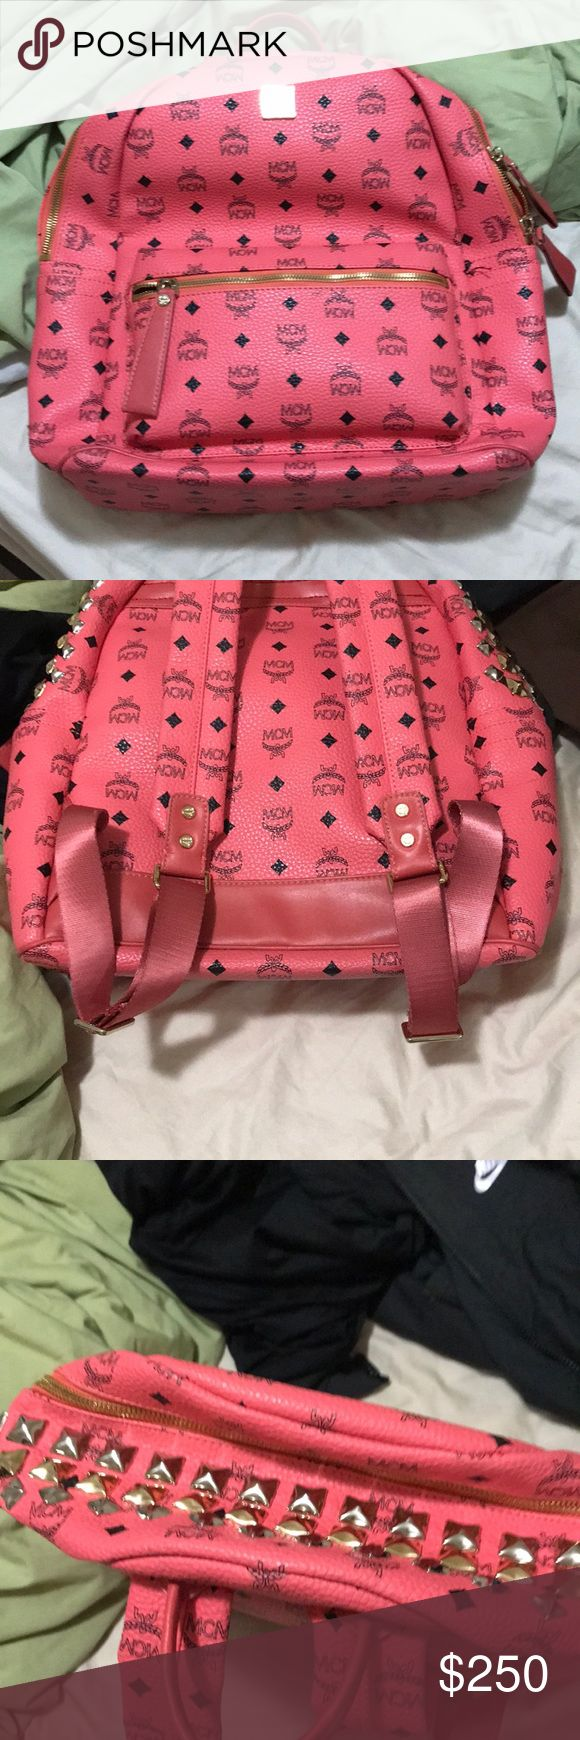 mcm backpack pink in good condition MCM Bags Backpacks